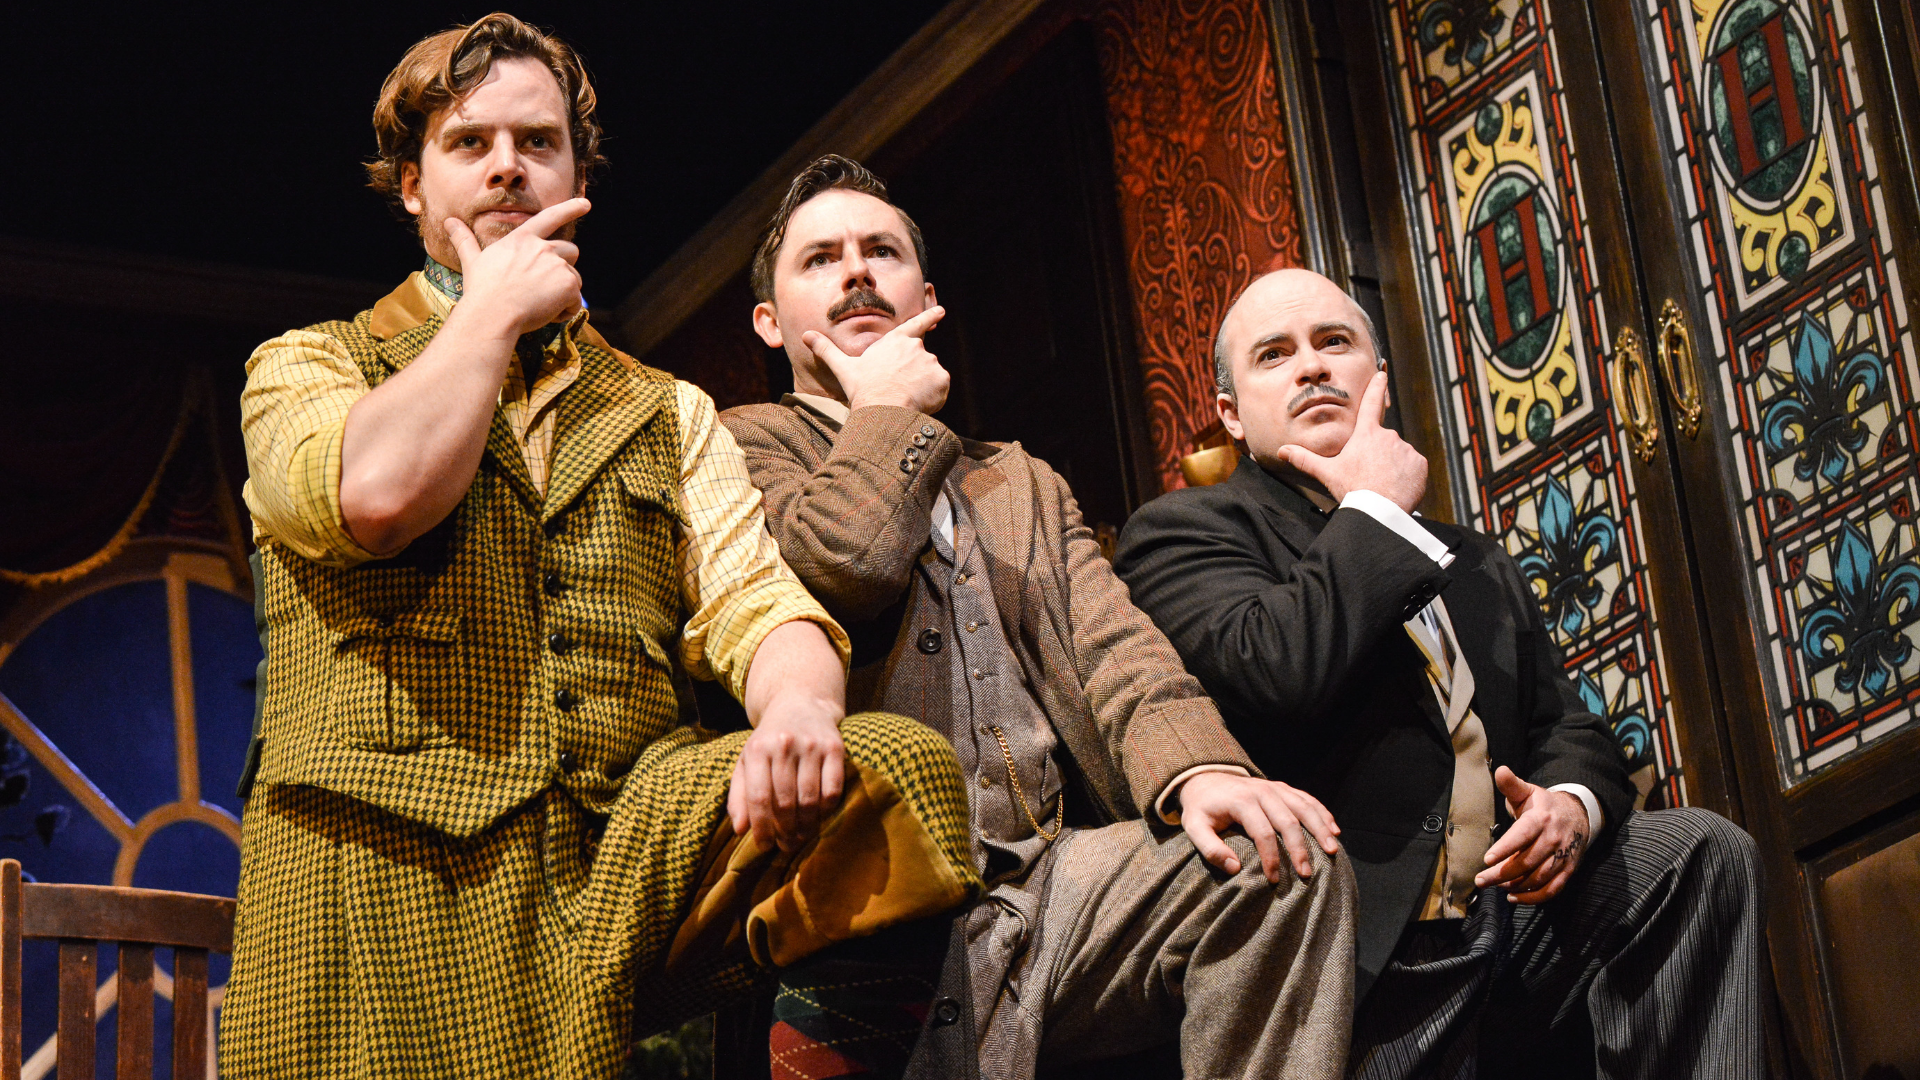 The Play That Goes Wrong Production Shot: Robert (Matthew Howell), Chris (James Watterson) and Dennis (Edward Howells) are standing next to each other all in the same position - one foot up on a rest, left hand resting on their left knee and their finger and thumb (right hand) stroking their chin.